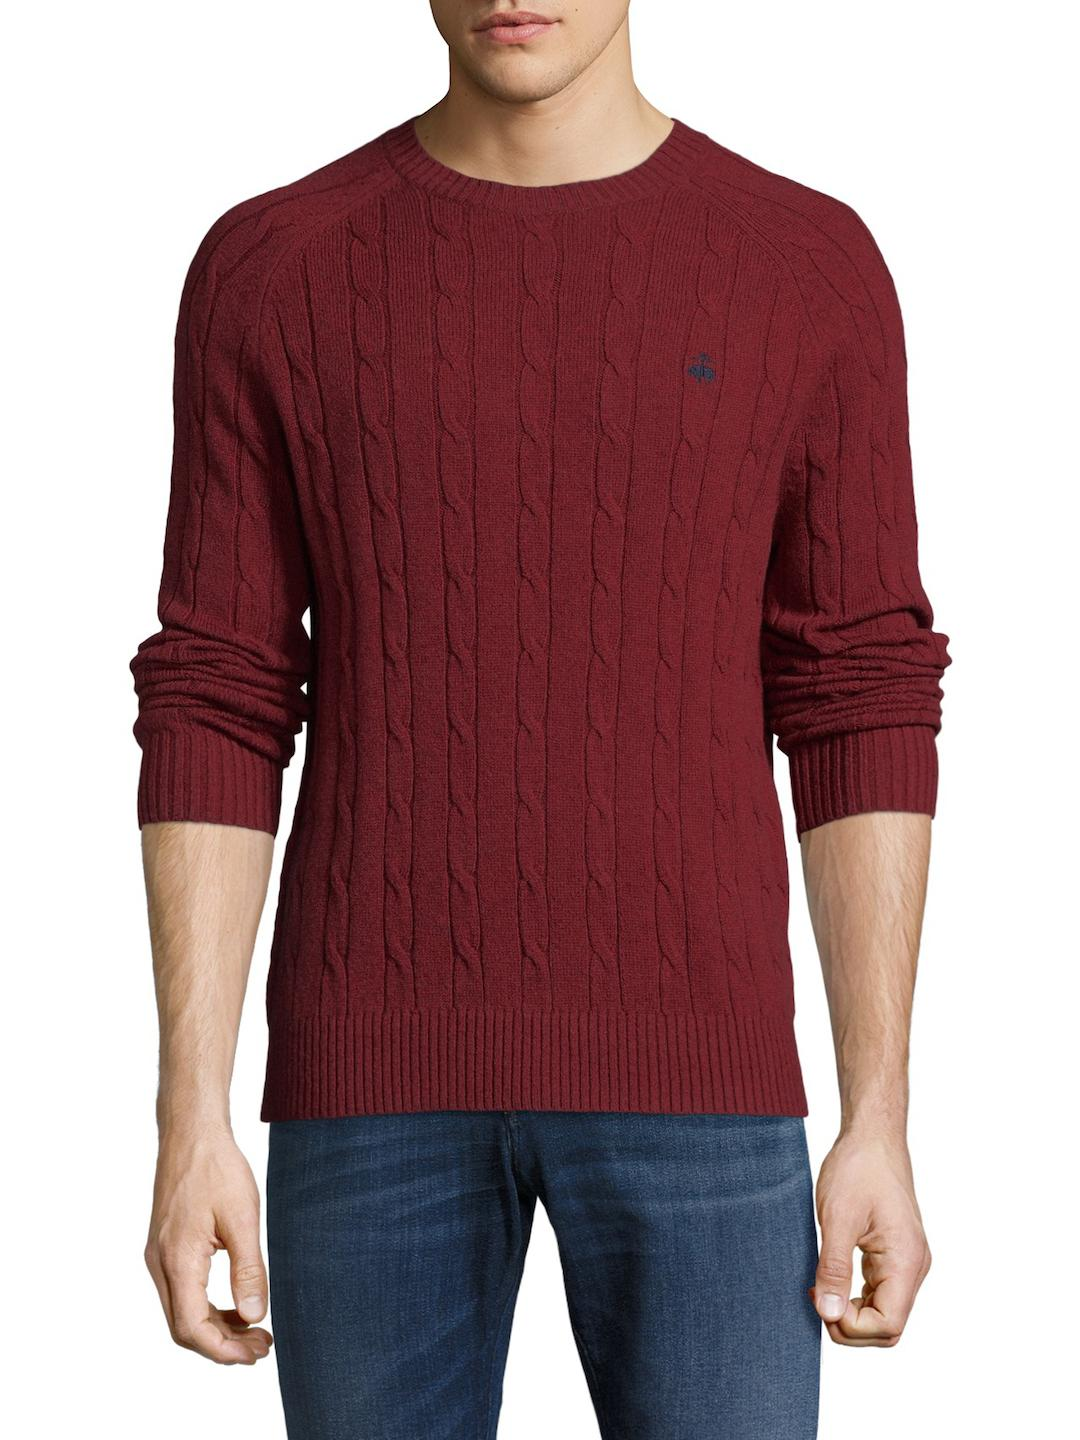 Mens KNT Ls Solid Stitch Crew Sweatshirt Brooks Brothers Wiki Cheap Online Limited New GoKzY